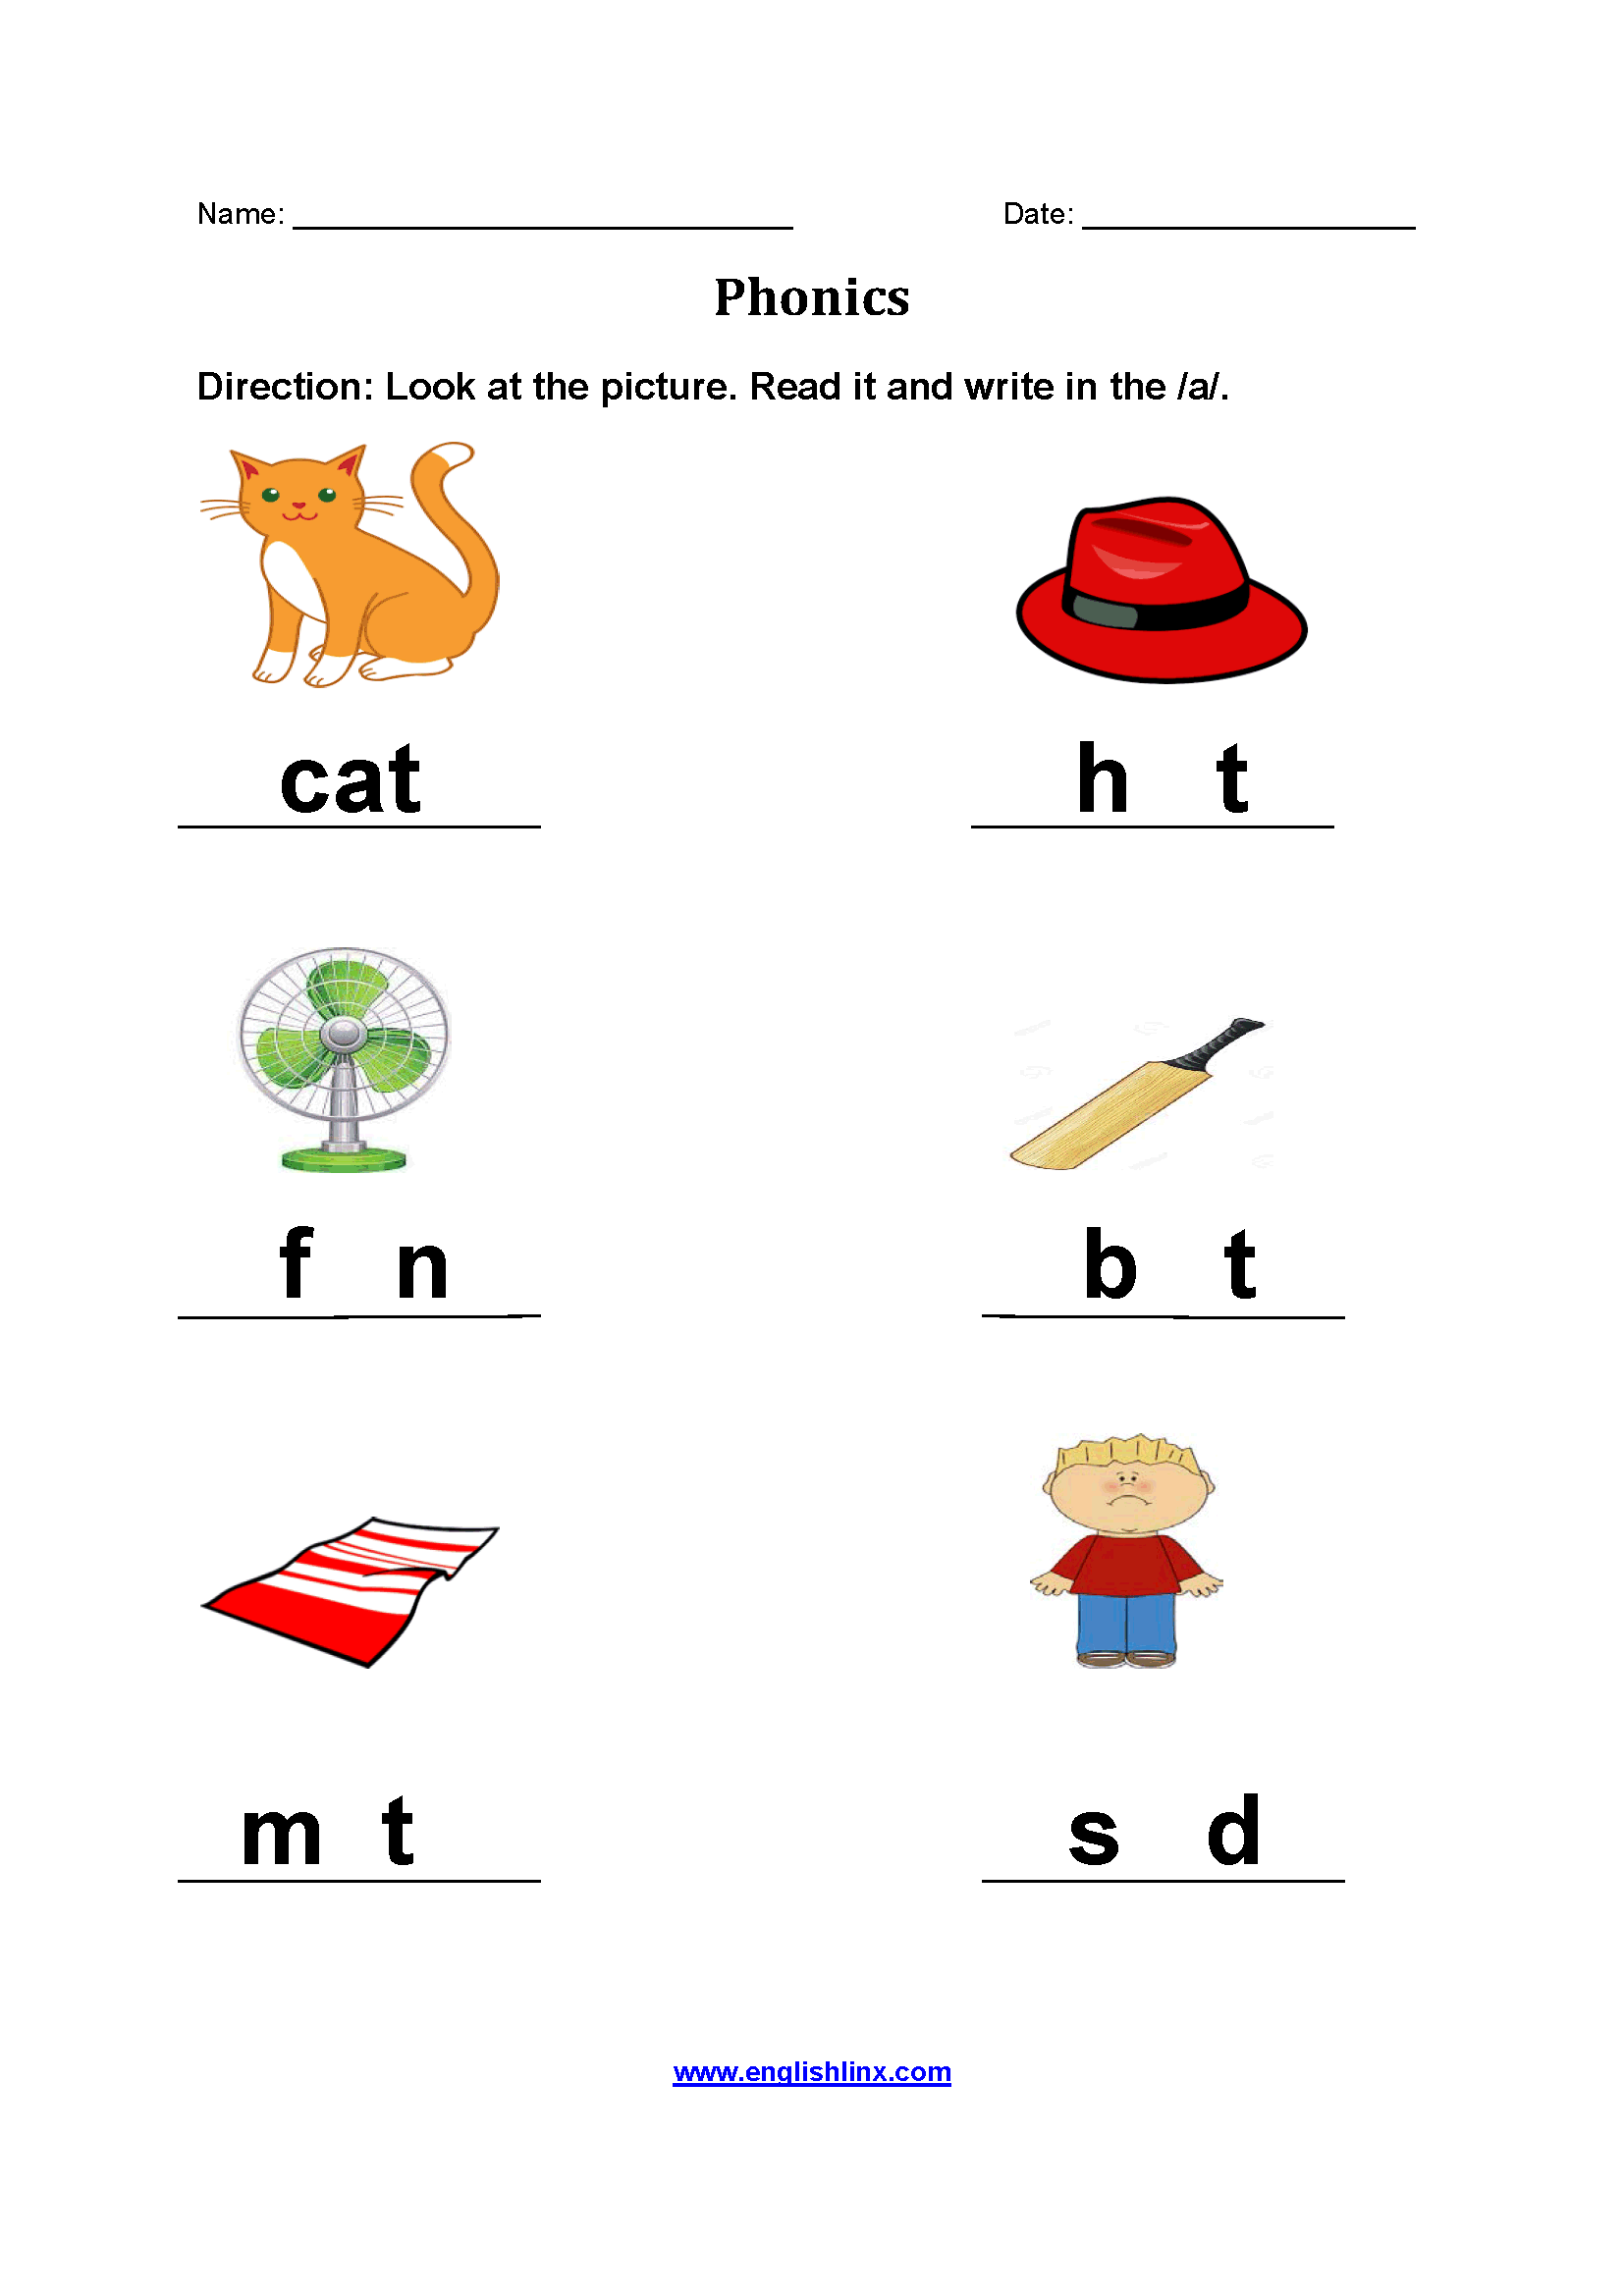 Adding A Phonics Worksheets